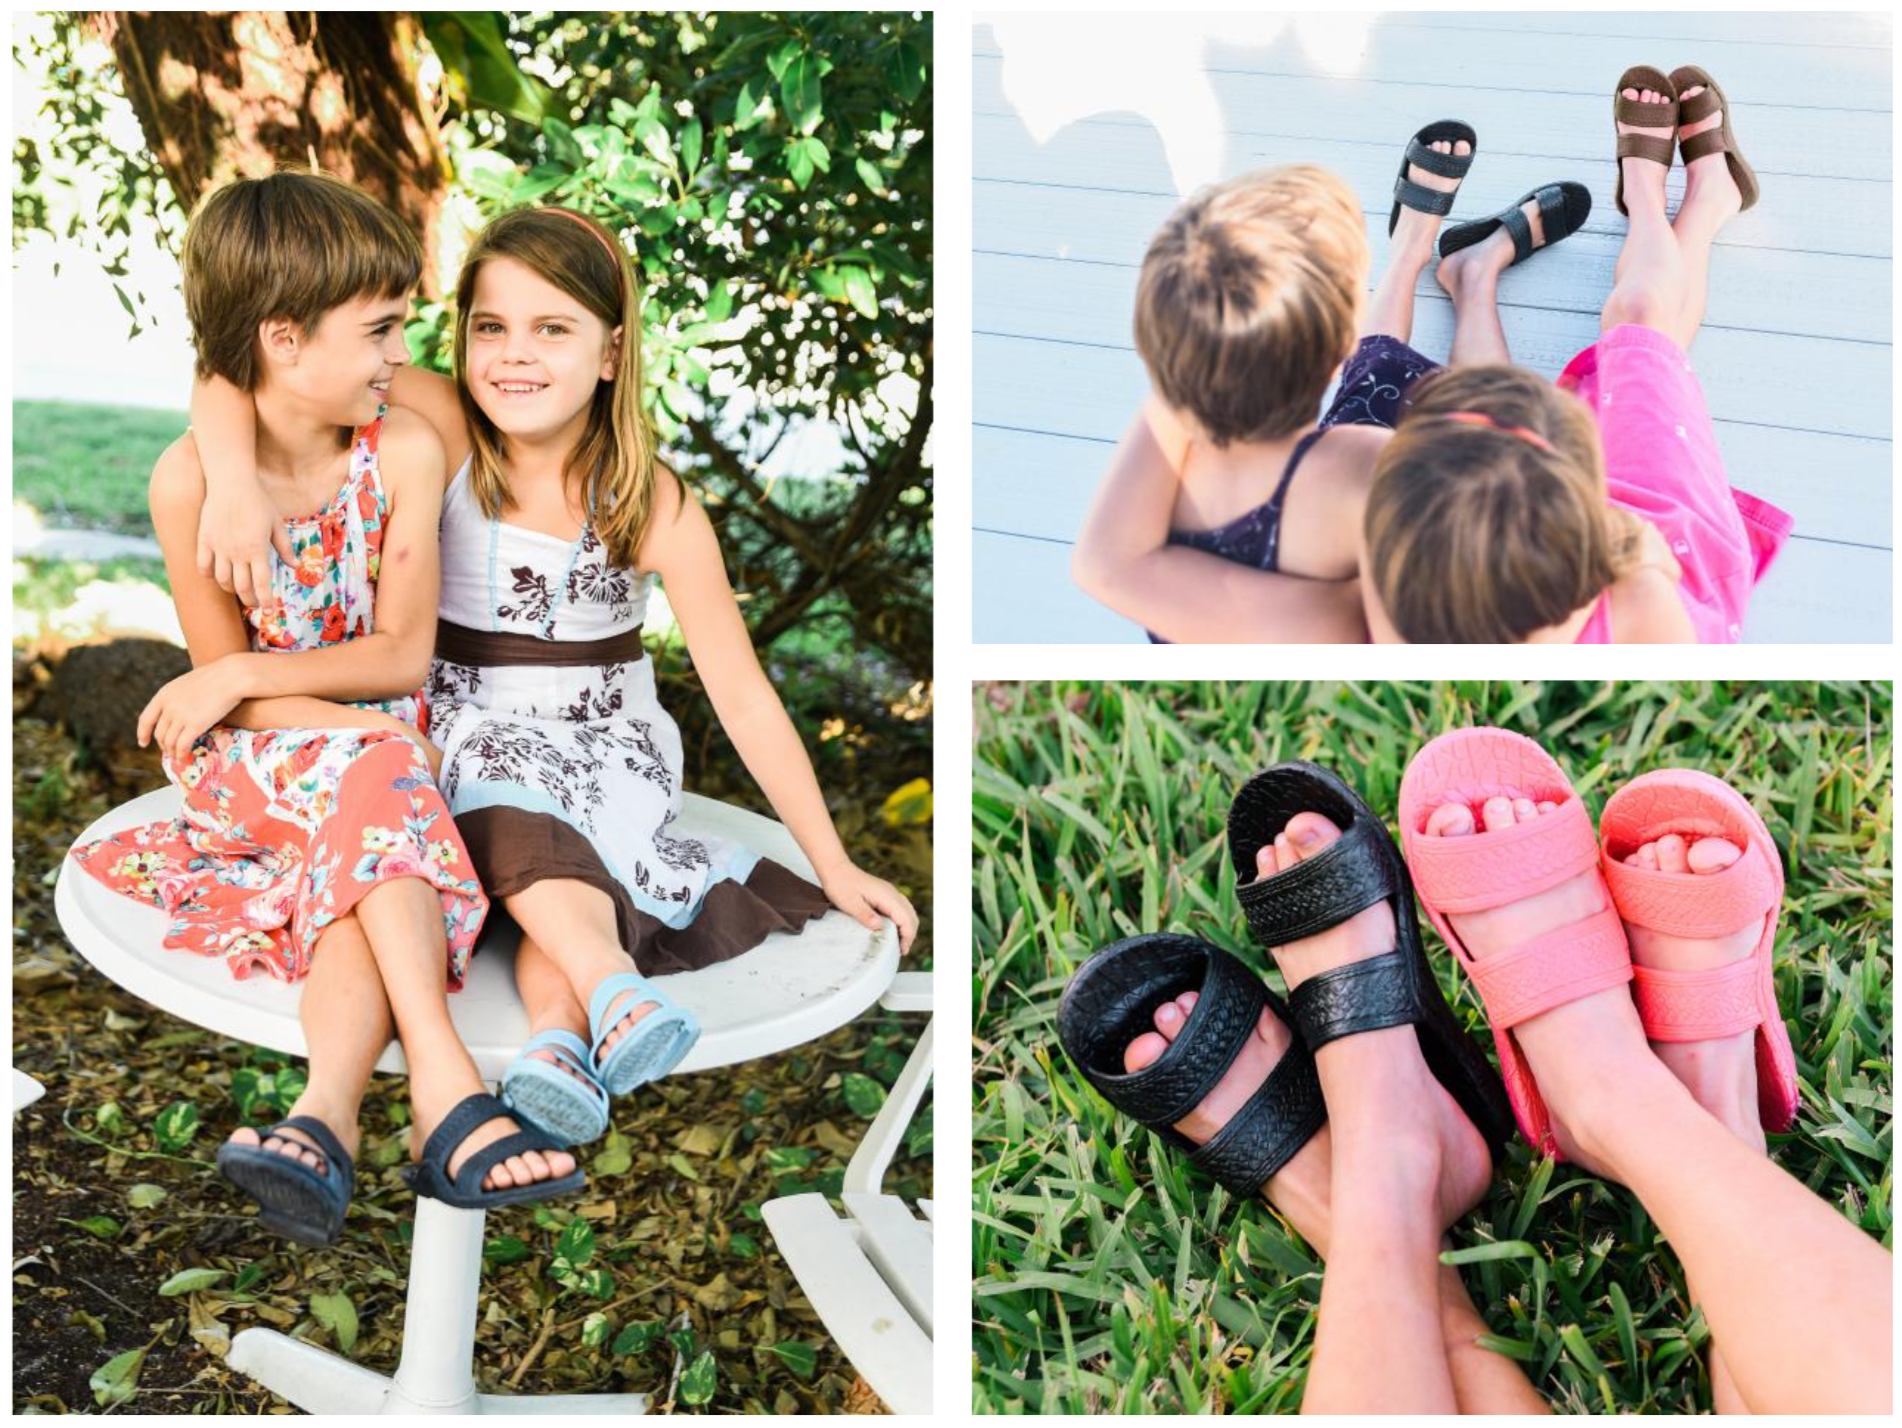 Kids Jandal - Brown, Black, Navy, Pink & Aqua